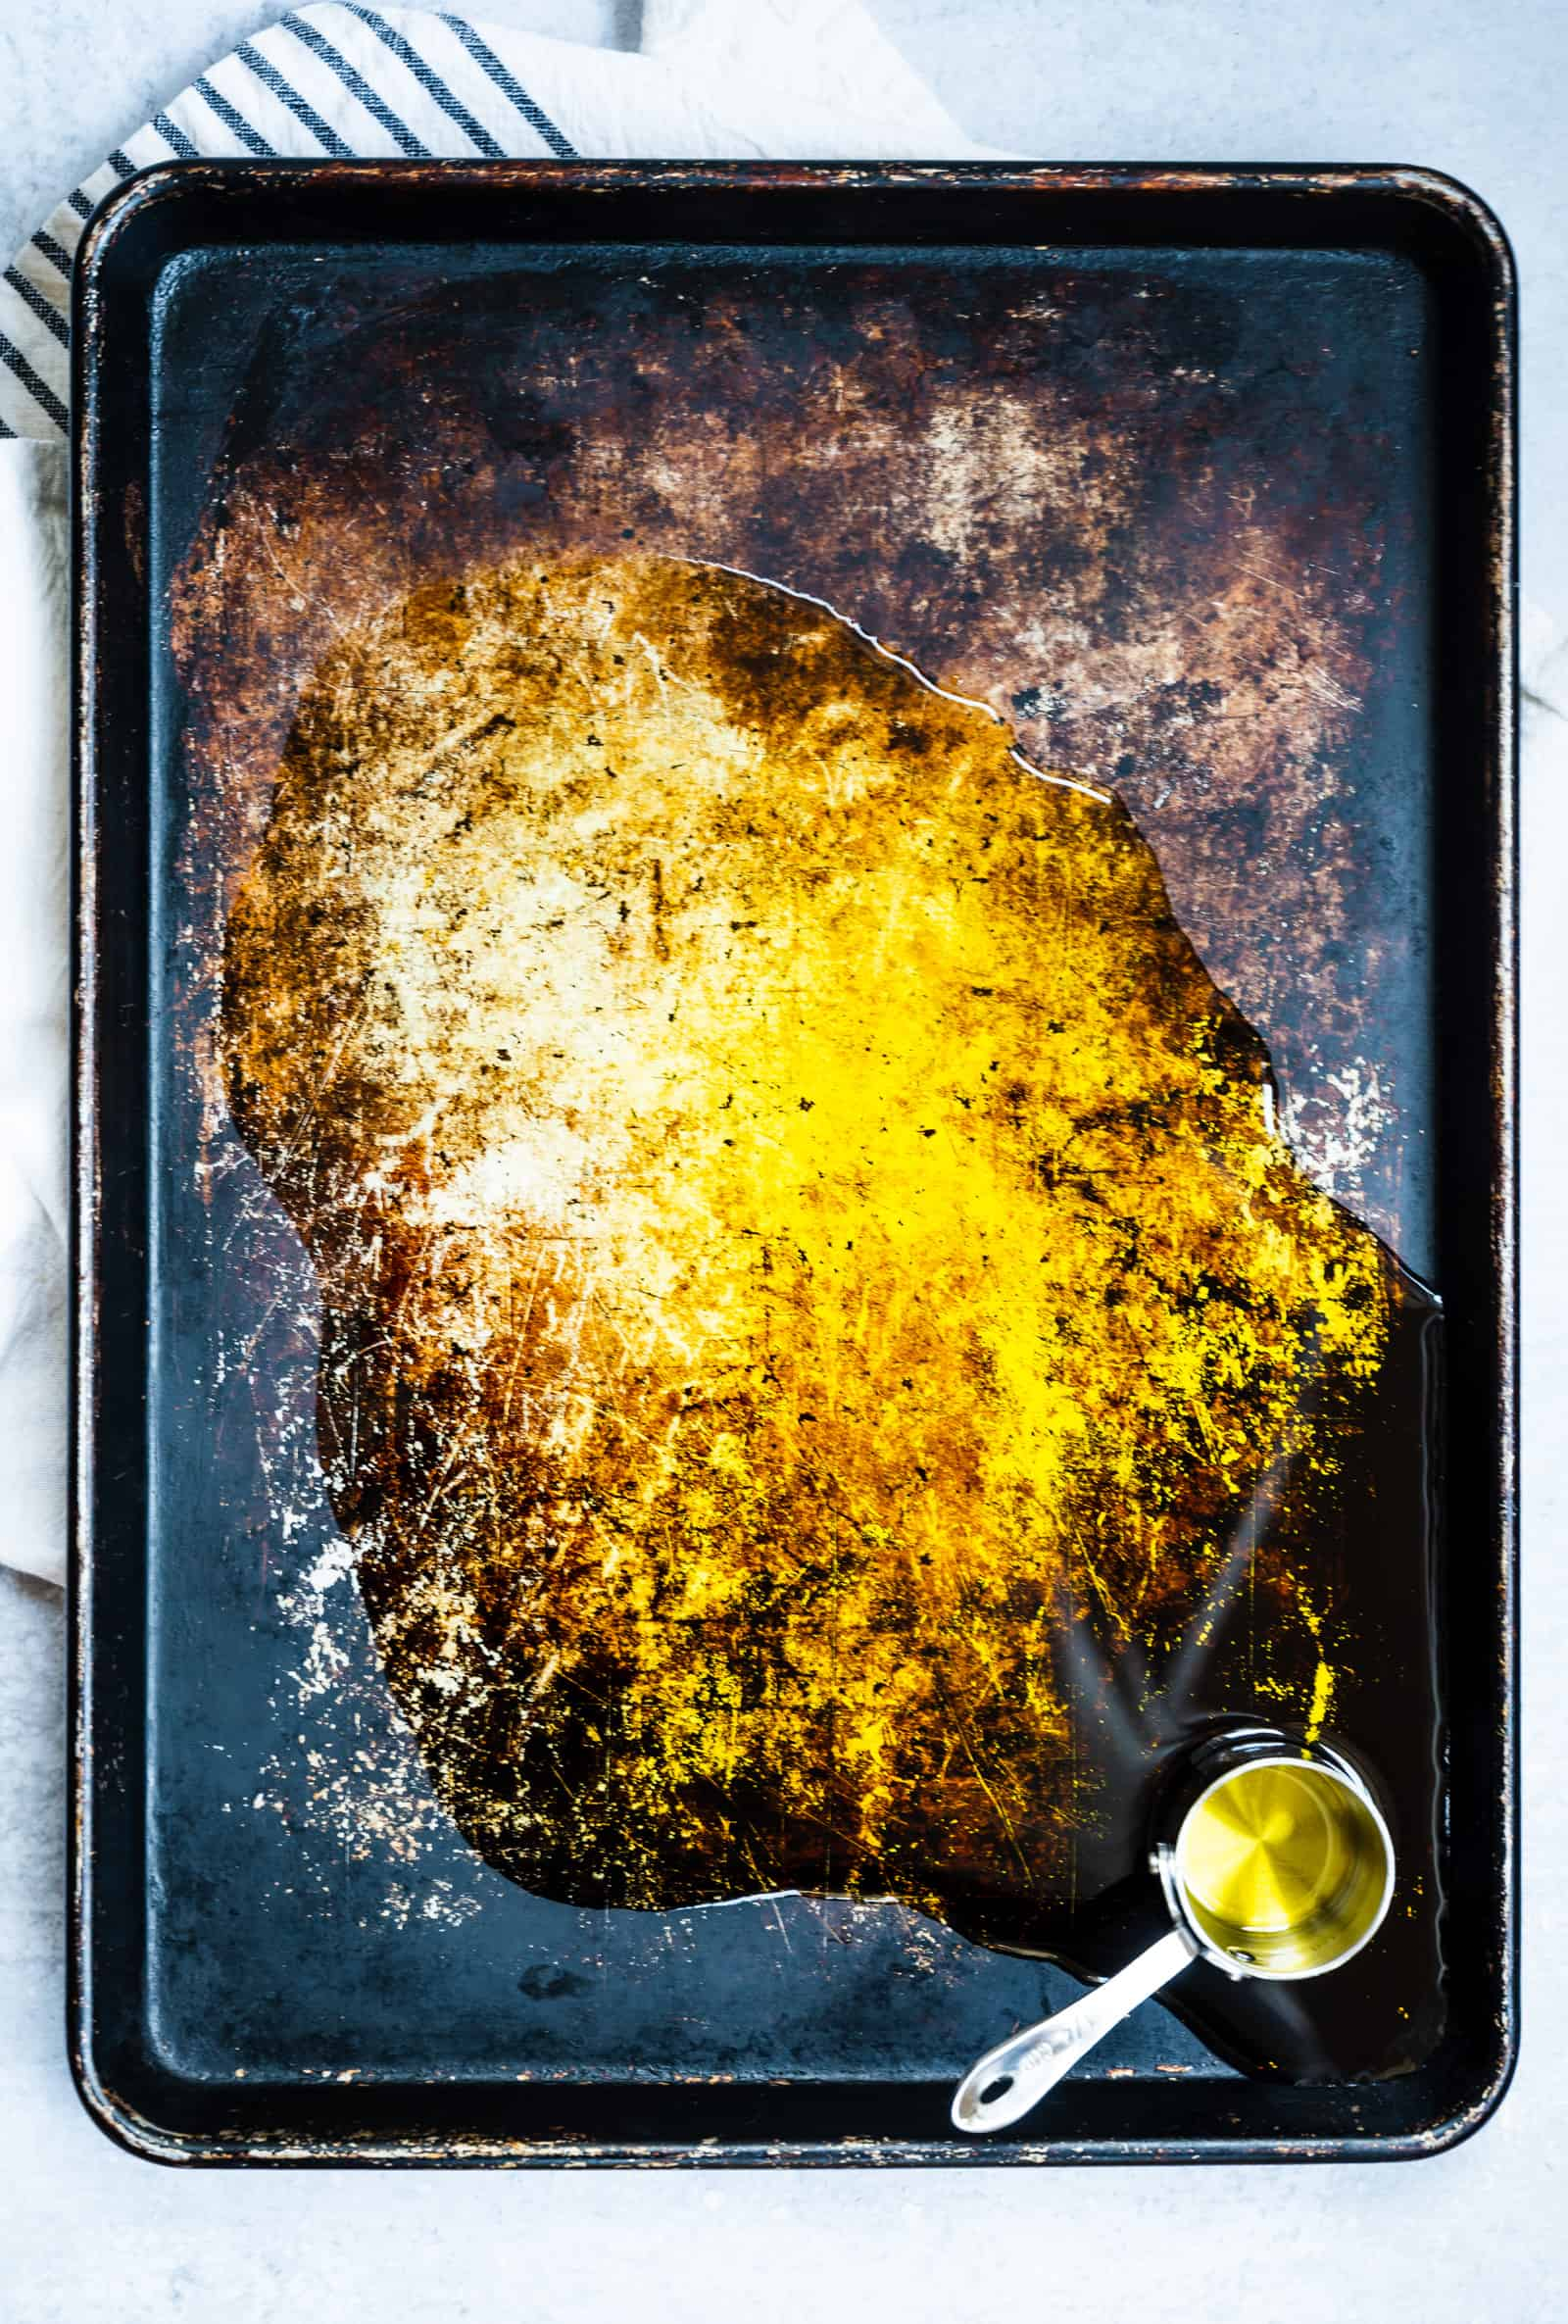 worn sheet pan with olive oil spilled on it and a stainless measuring cup